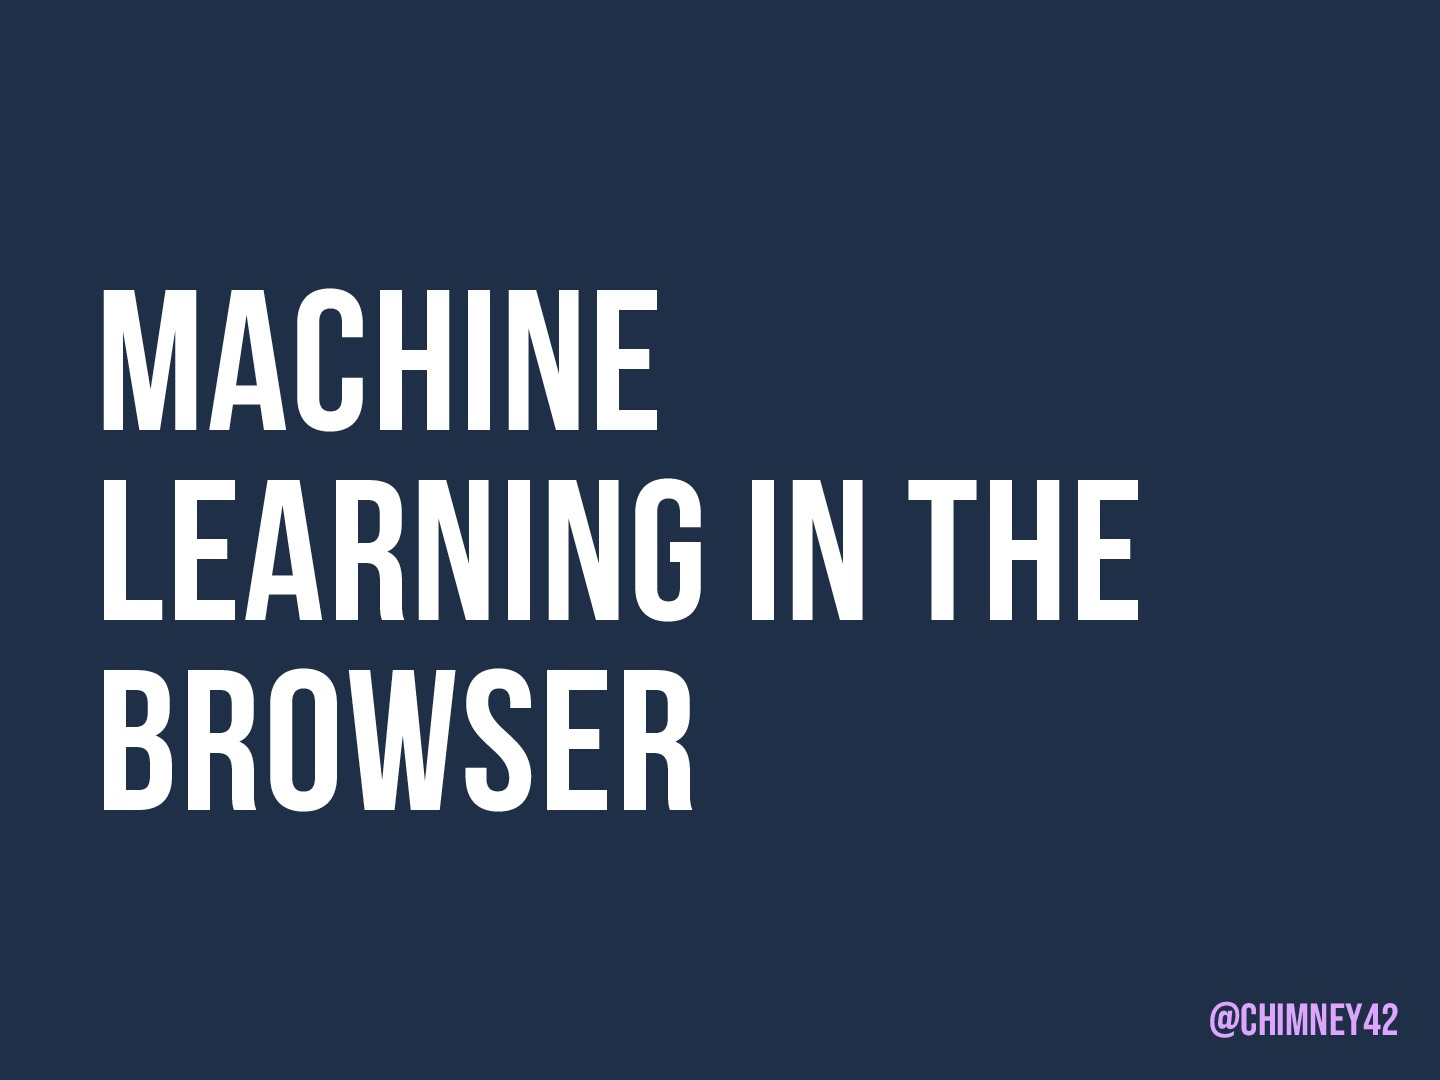 Machine Learning in the browser